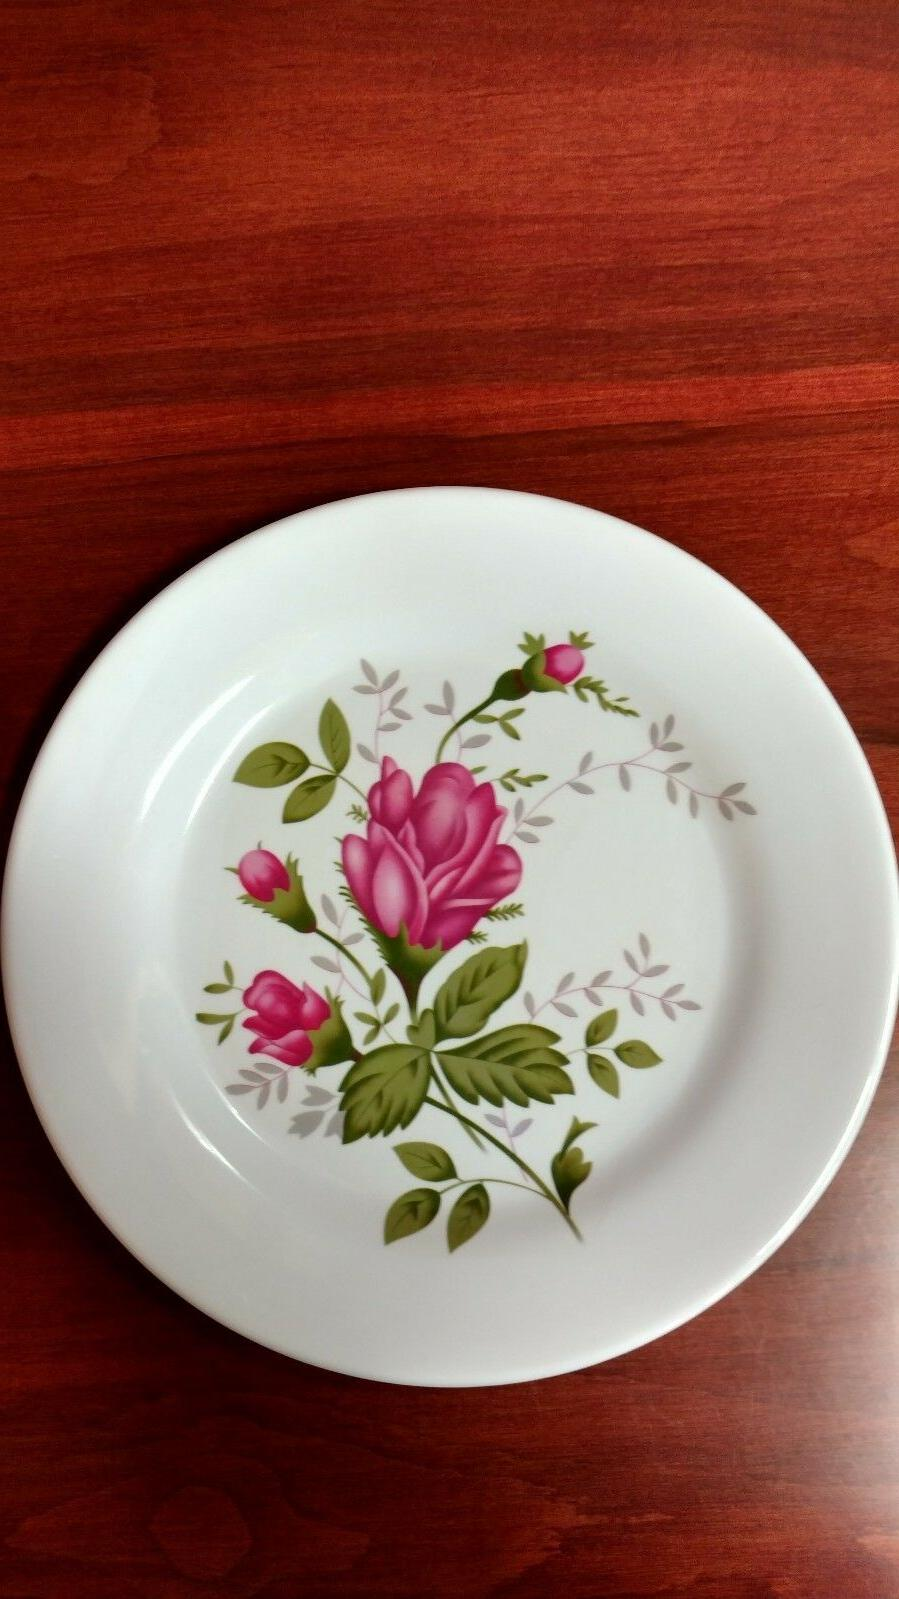 Brand New! 9 inch Melamine Dinner Plates with Rose Design Fr